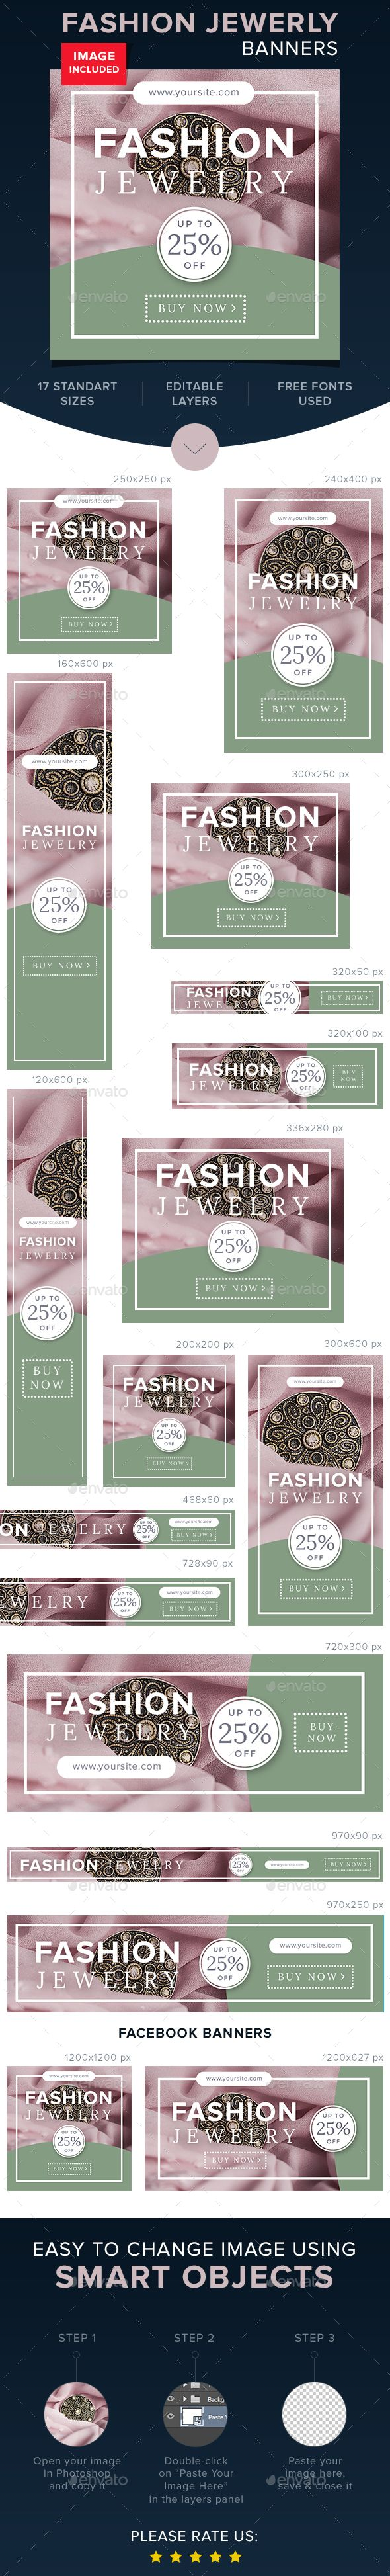 Fashion Jewerly Banners - Banners & Ads Web Elements